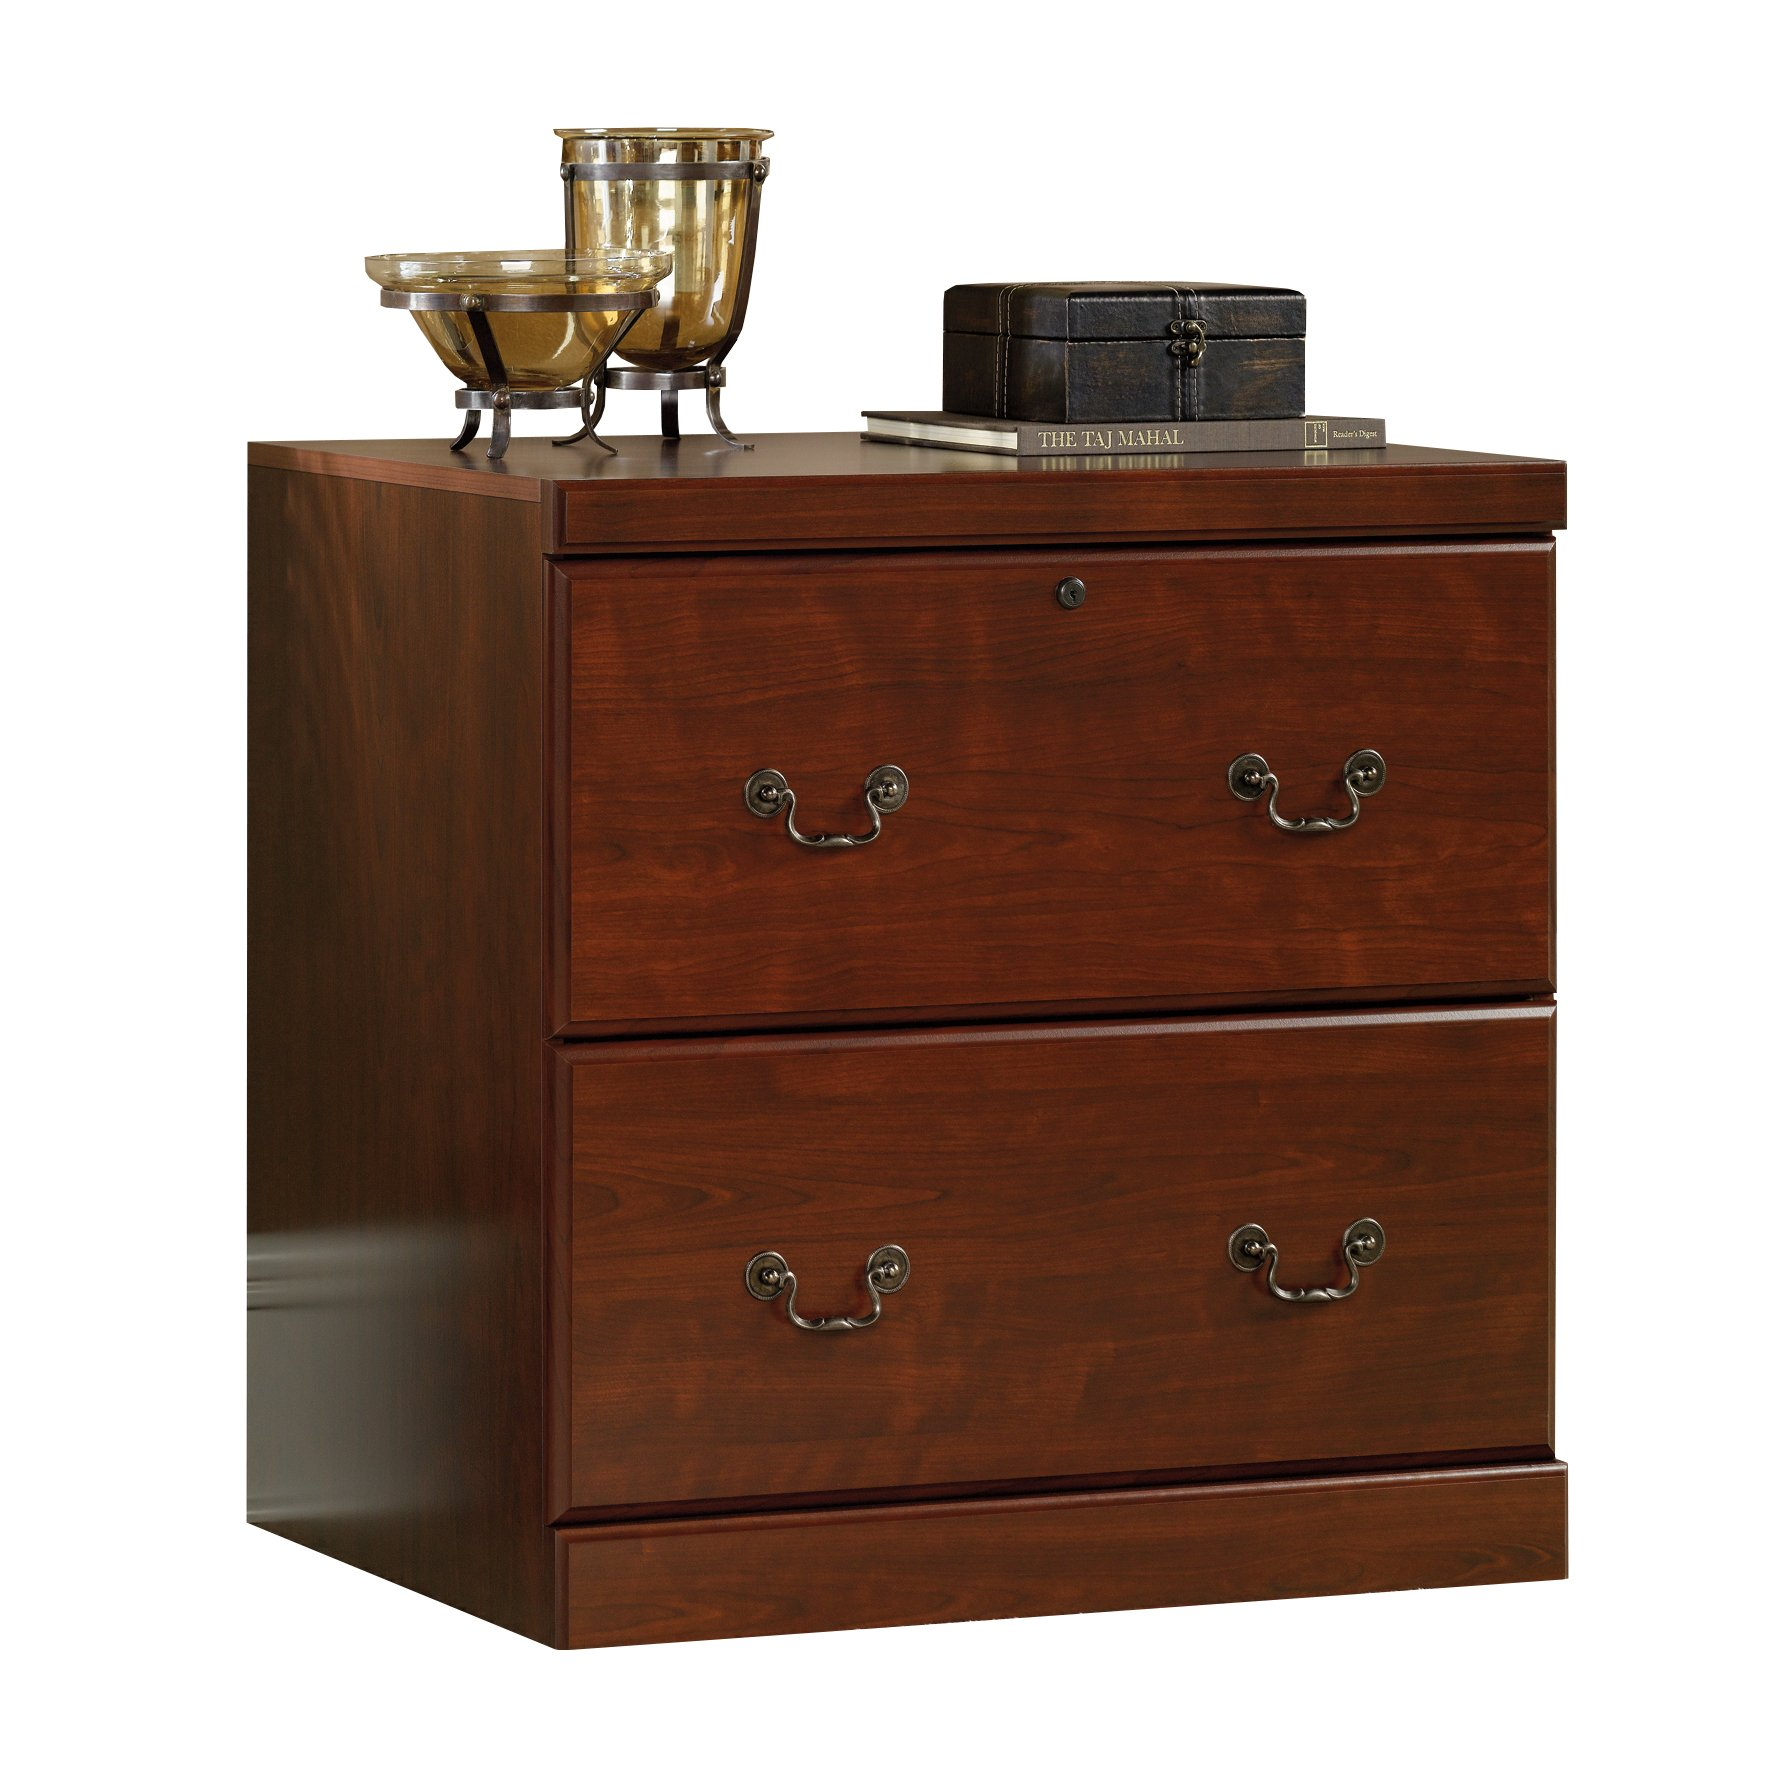 Sauder 102702 Heritage Hill Lateral File, L: 30.12'' x W: 20.47'' x H: 30.12'', Classic Cherry finish by Sauder